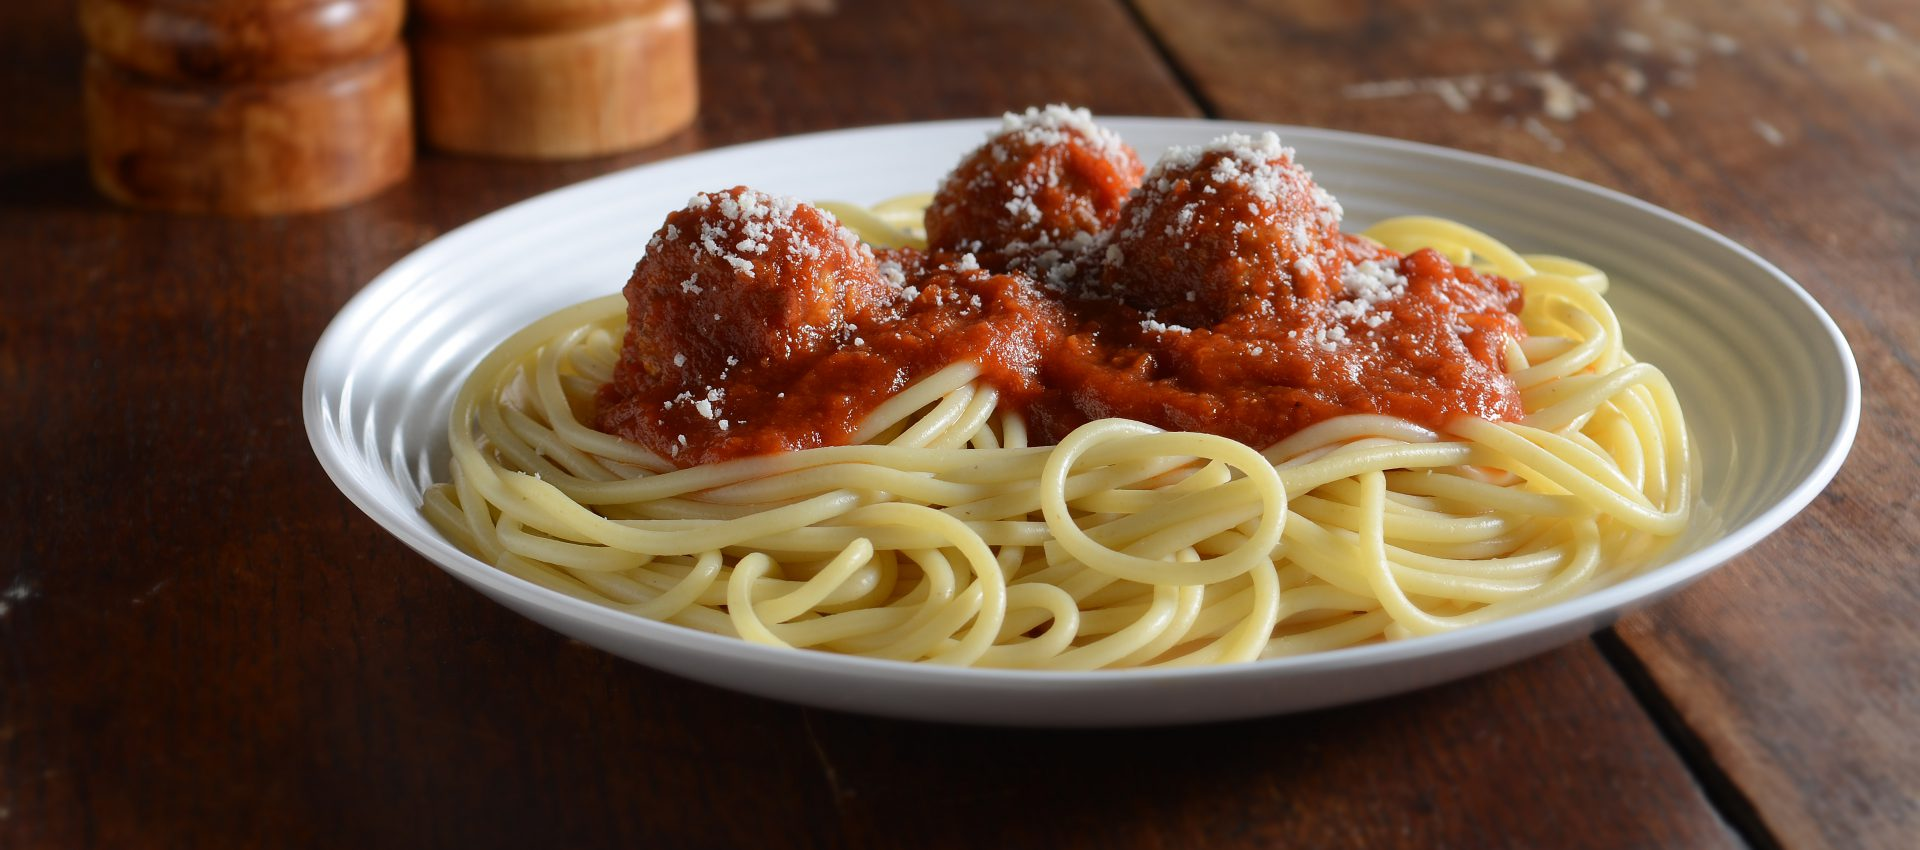 Vegetable-spaghetti-and-meatballs-1-HR-1920x850 Easy Weeknight Spaghetti and Meatballs